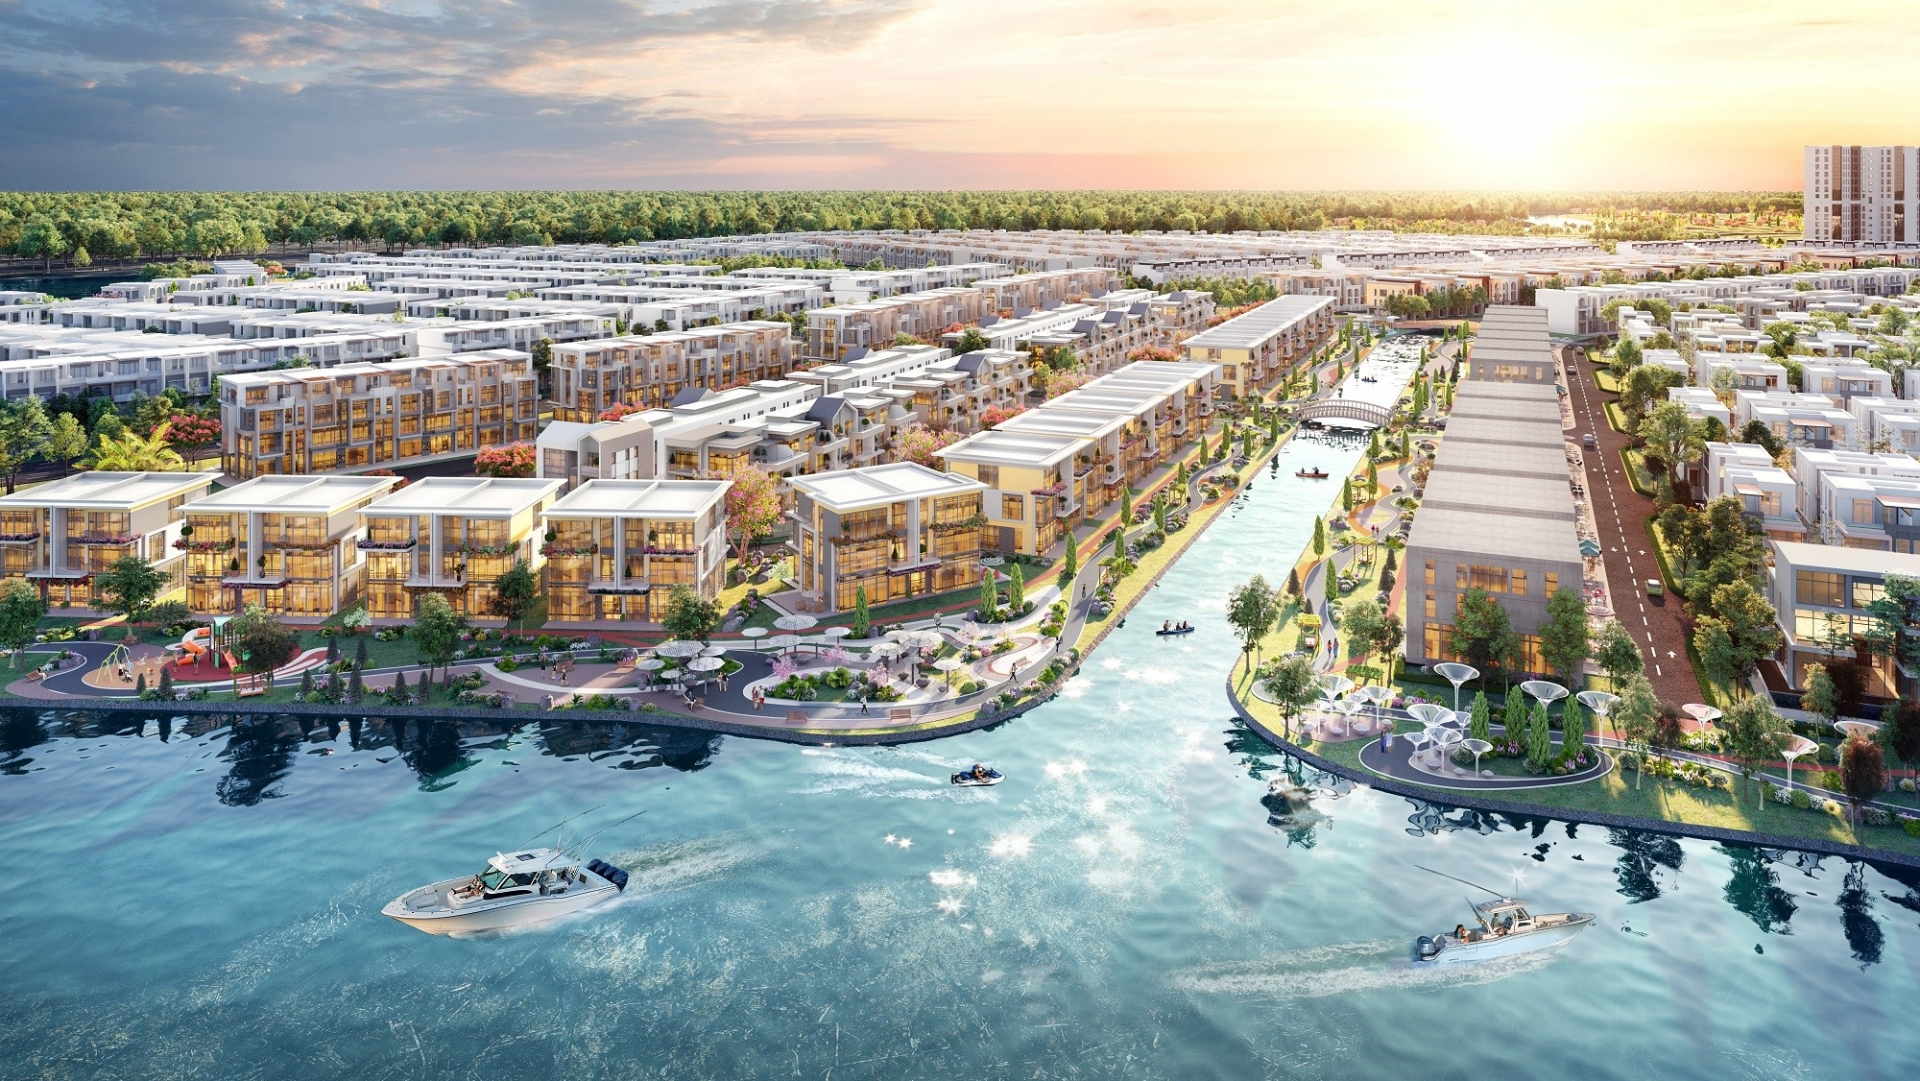 Eco-real estate projects in satellite urban areas poised to be priority choice for locals